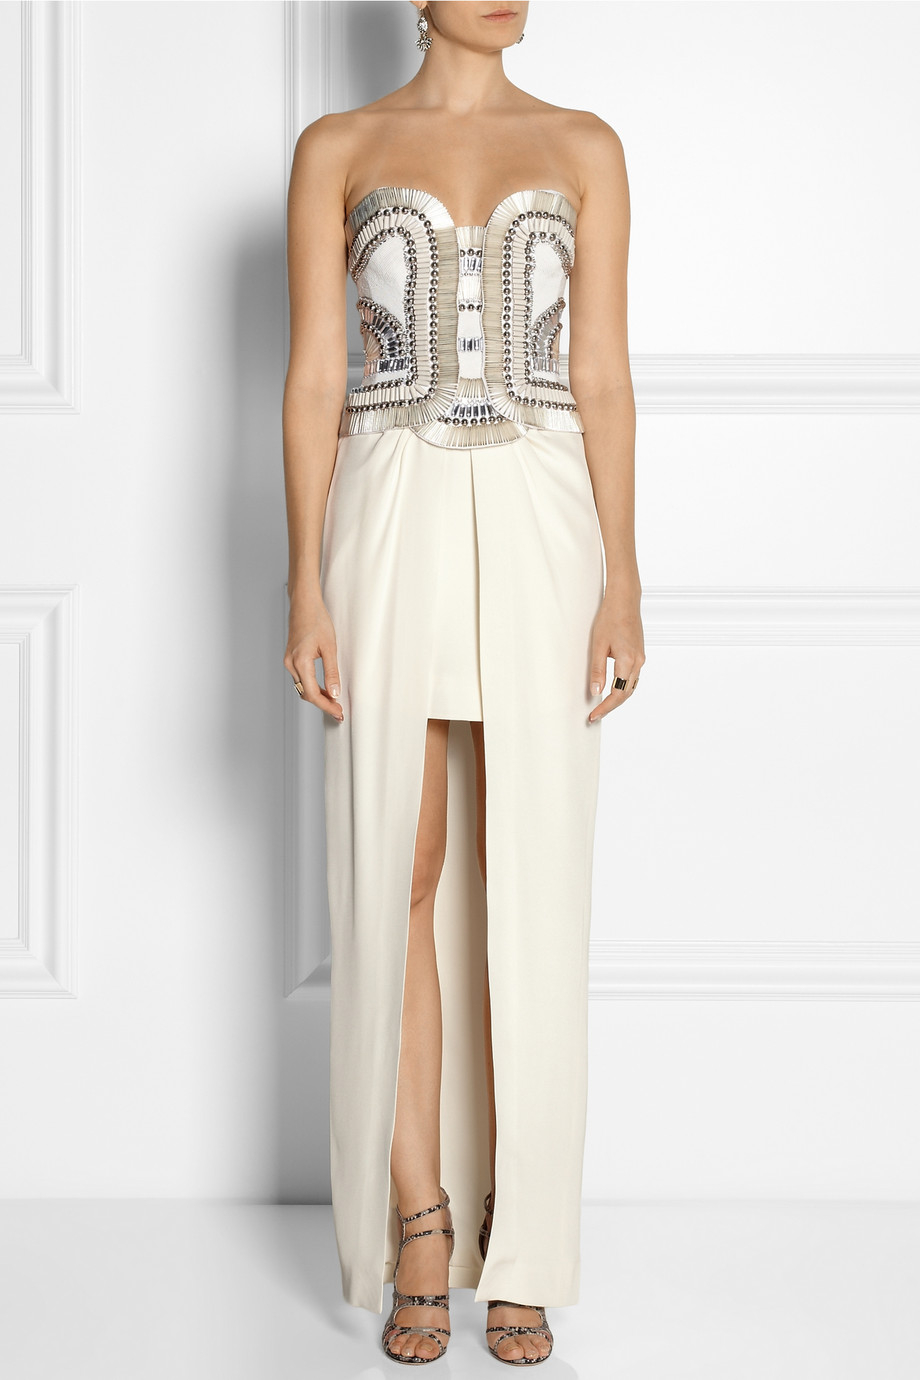 Sass Amp Bide Hit The Breaks Embellished Two Piece Cotton